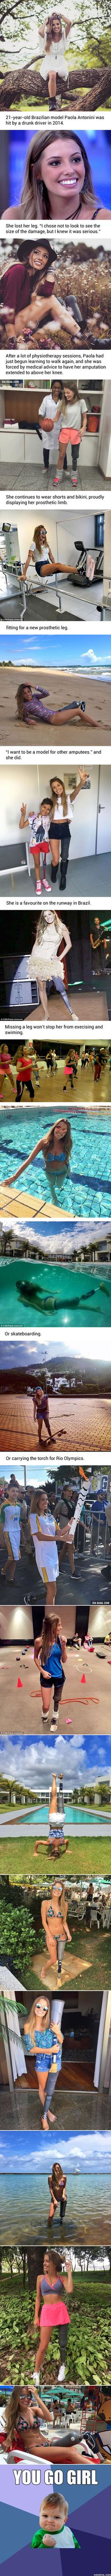 Amputee Model Proudly Displays Prosthetic Limb In Bikini Snaps - 9GAG